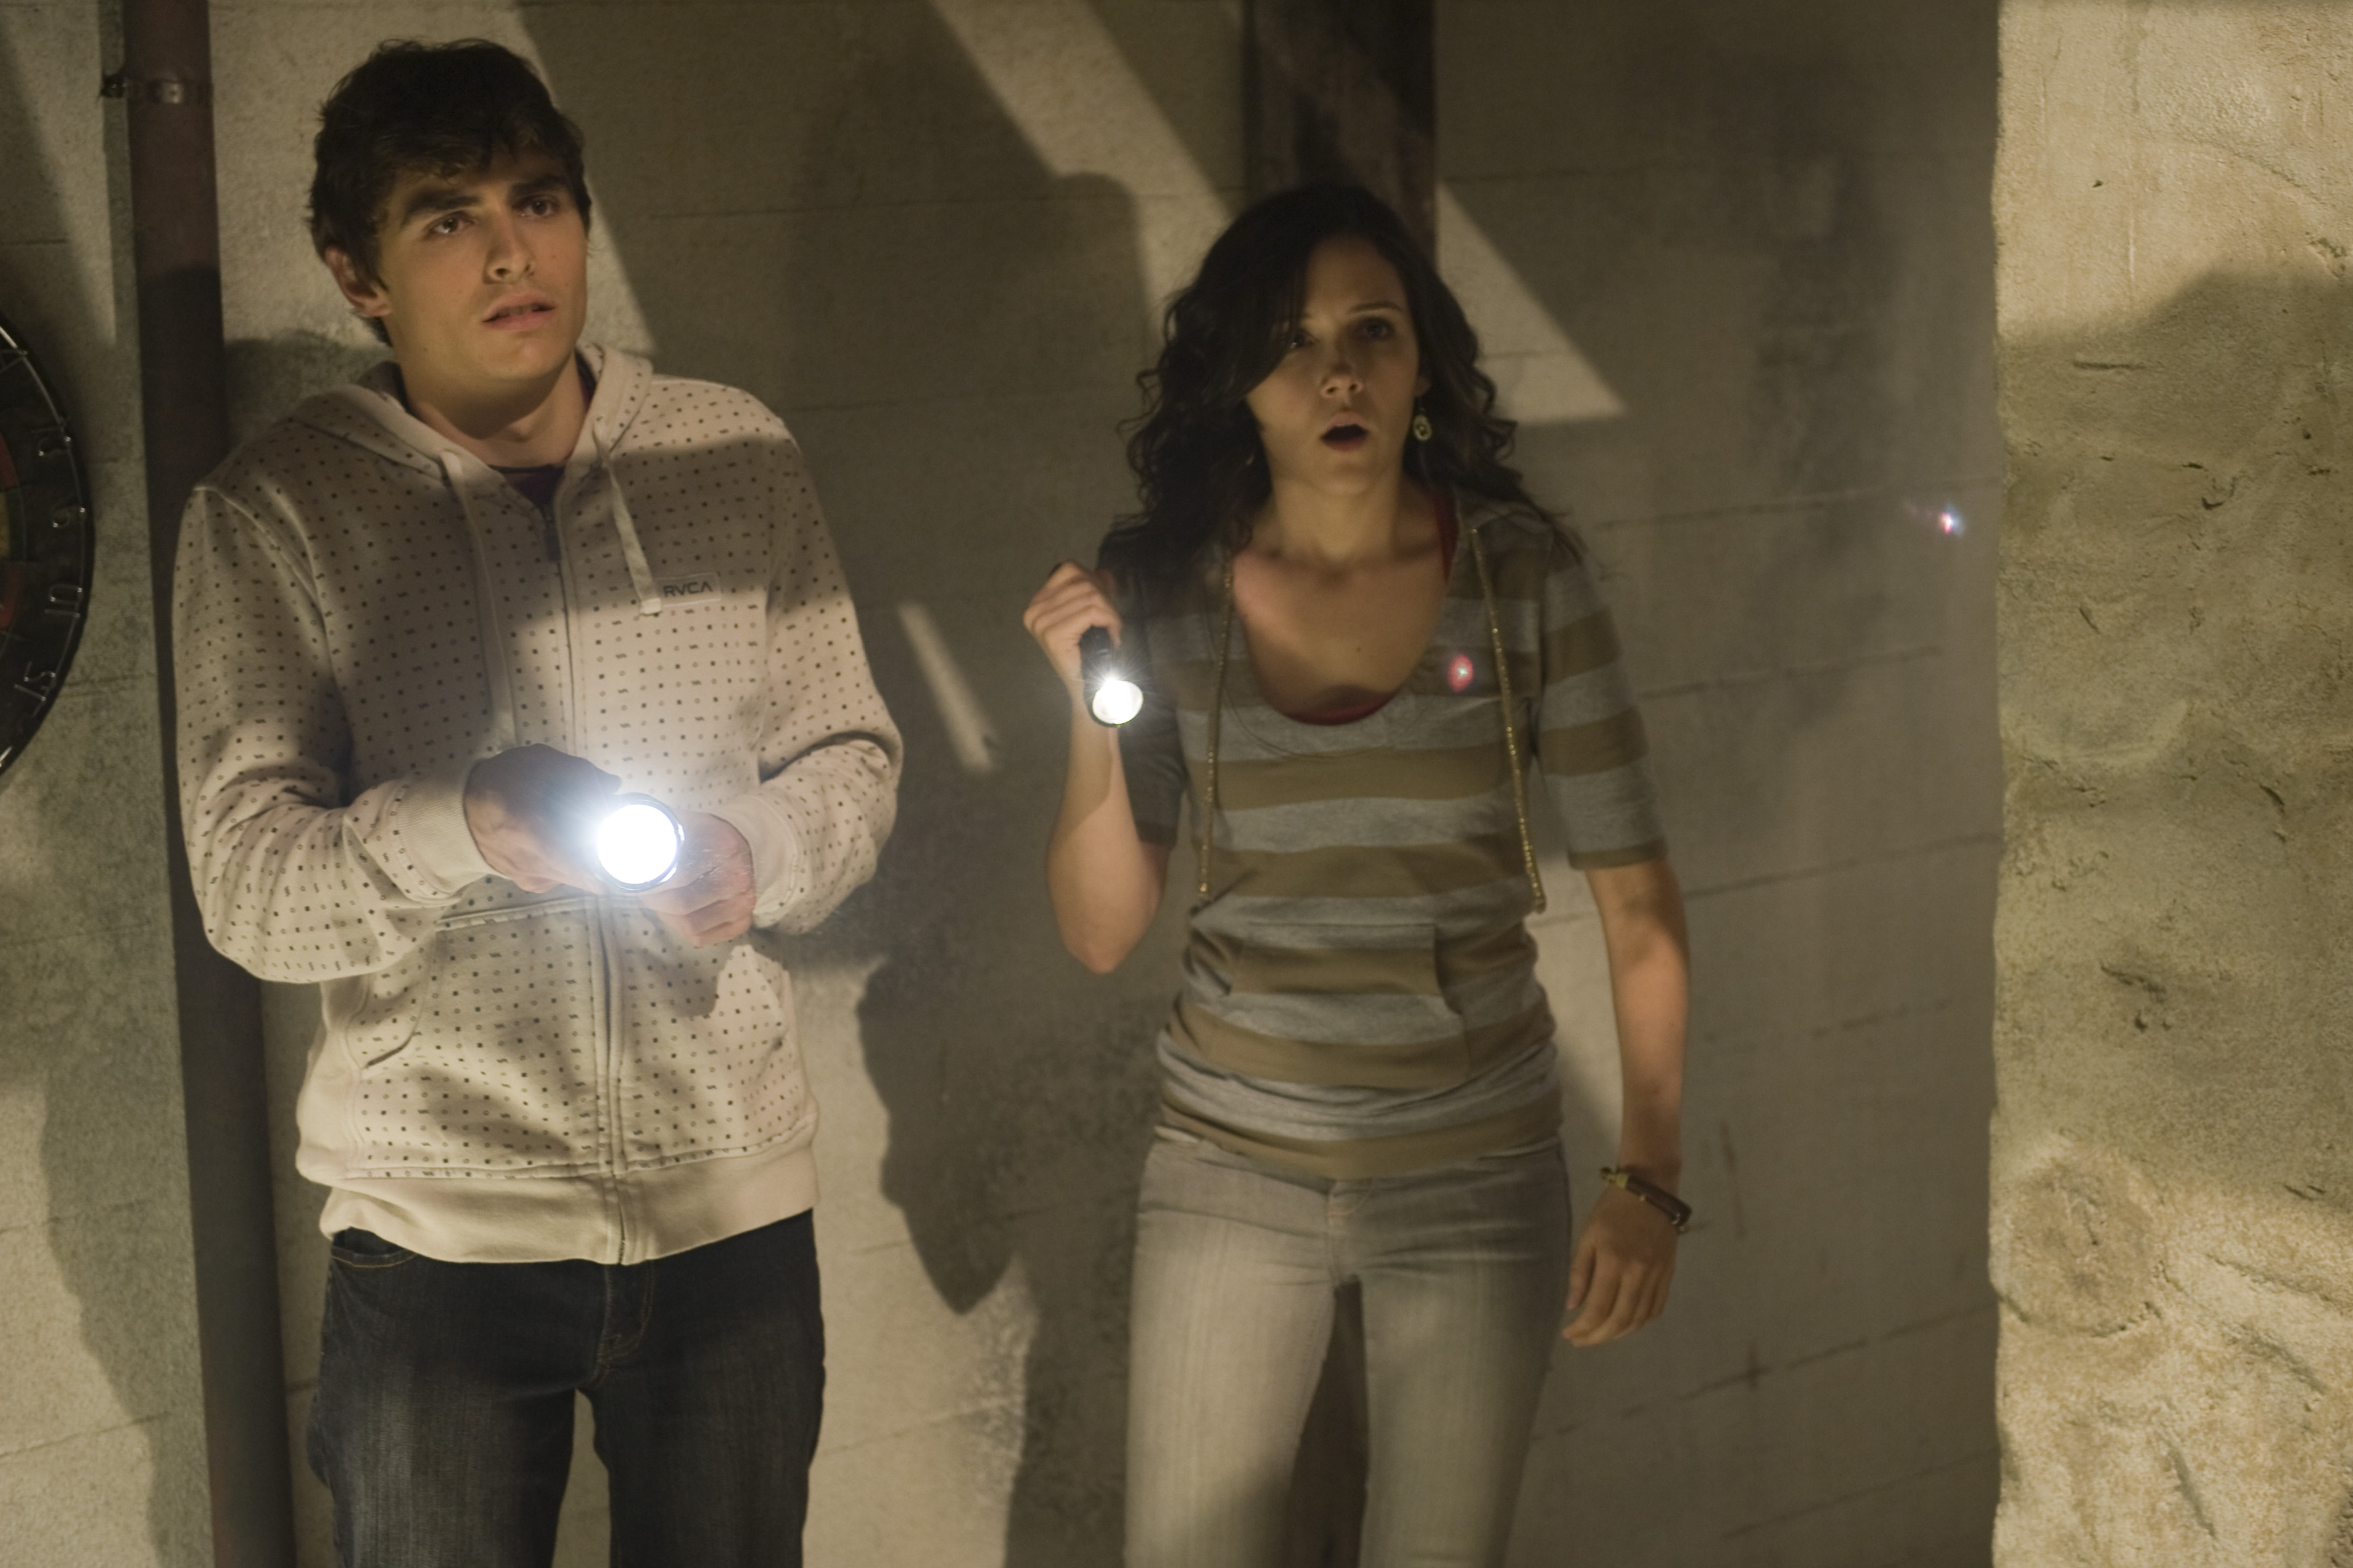 Shannon Woodward and Dave Franco in The Shortcut (2009)